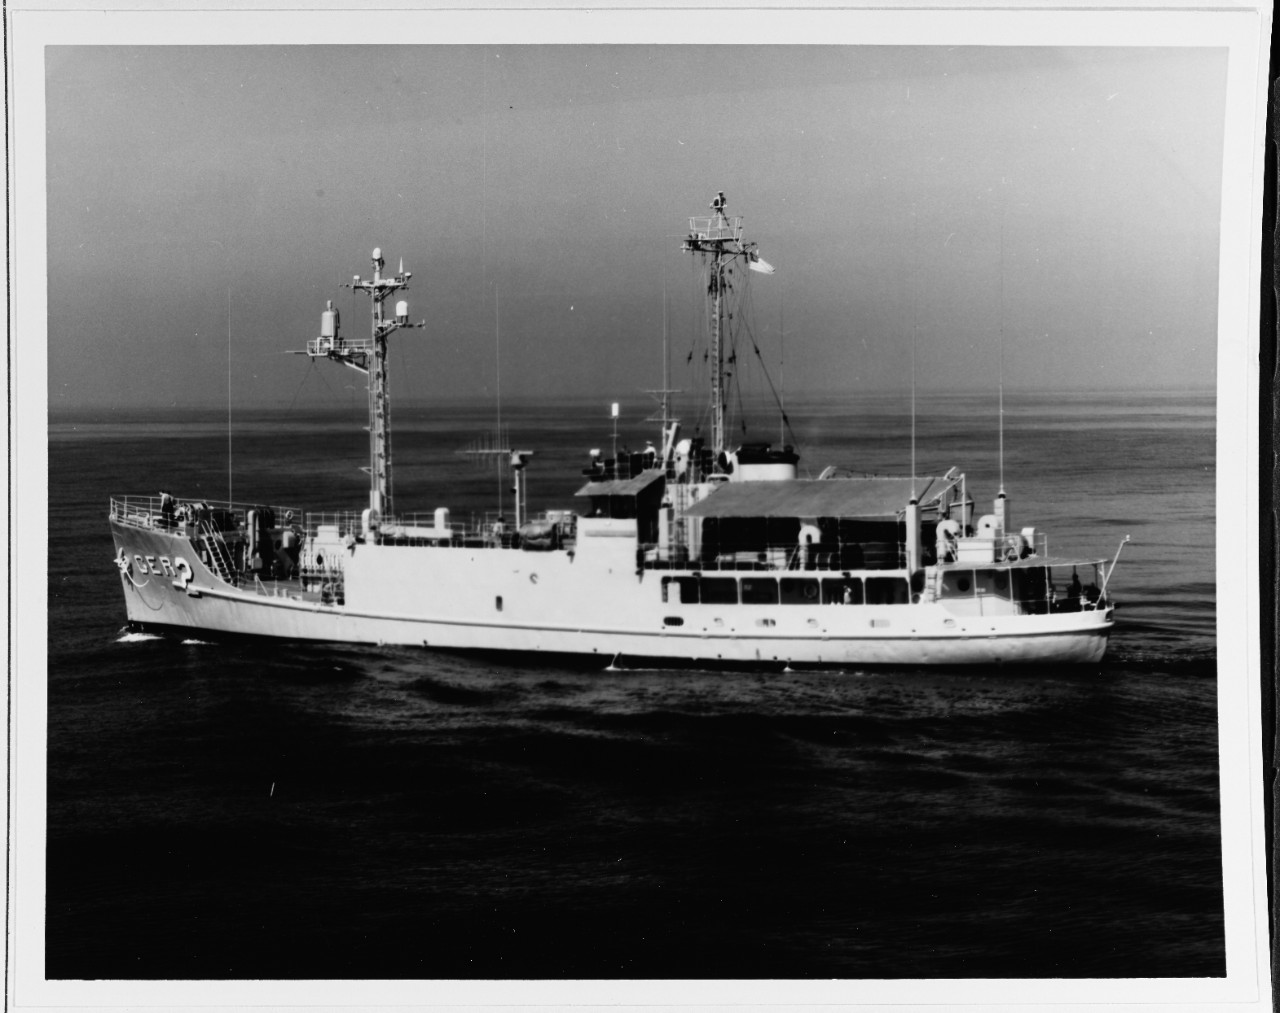 Off San Diego, California, 19 October 1967. Official U.S. Navy Photograph